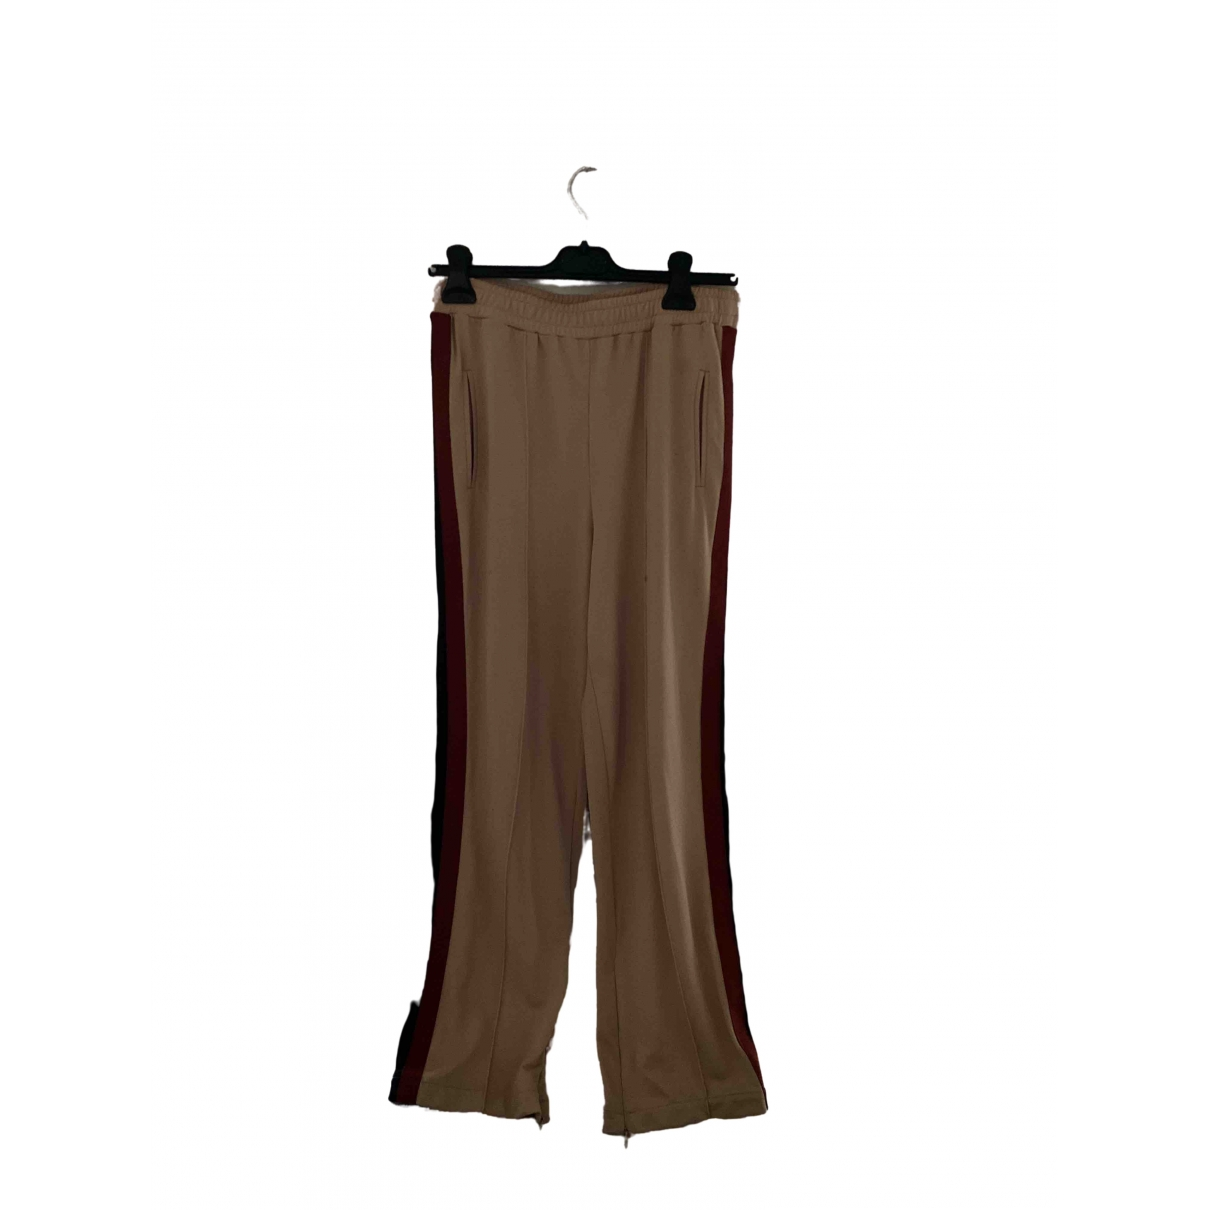 Ganni \N Multicolour Trousers for Women 36 FR